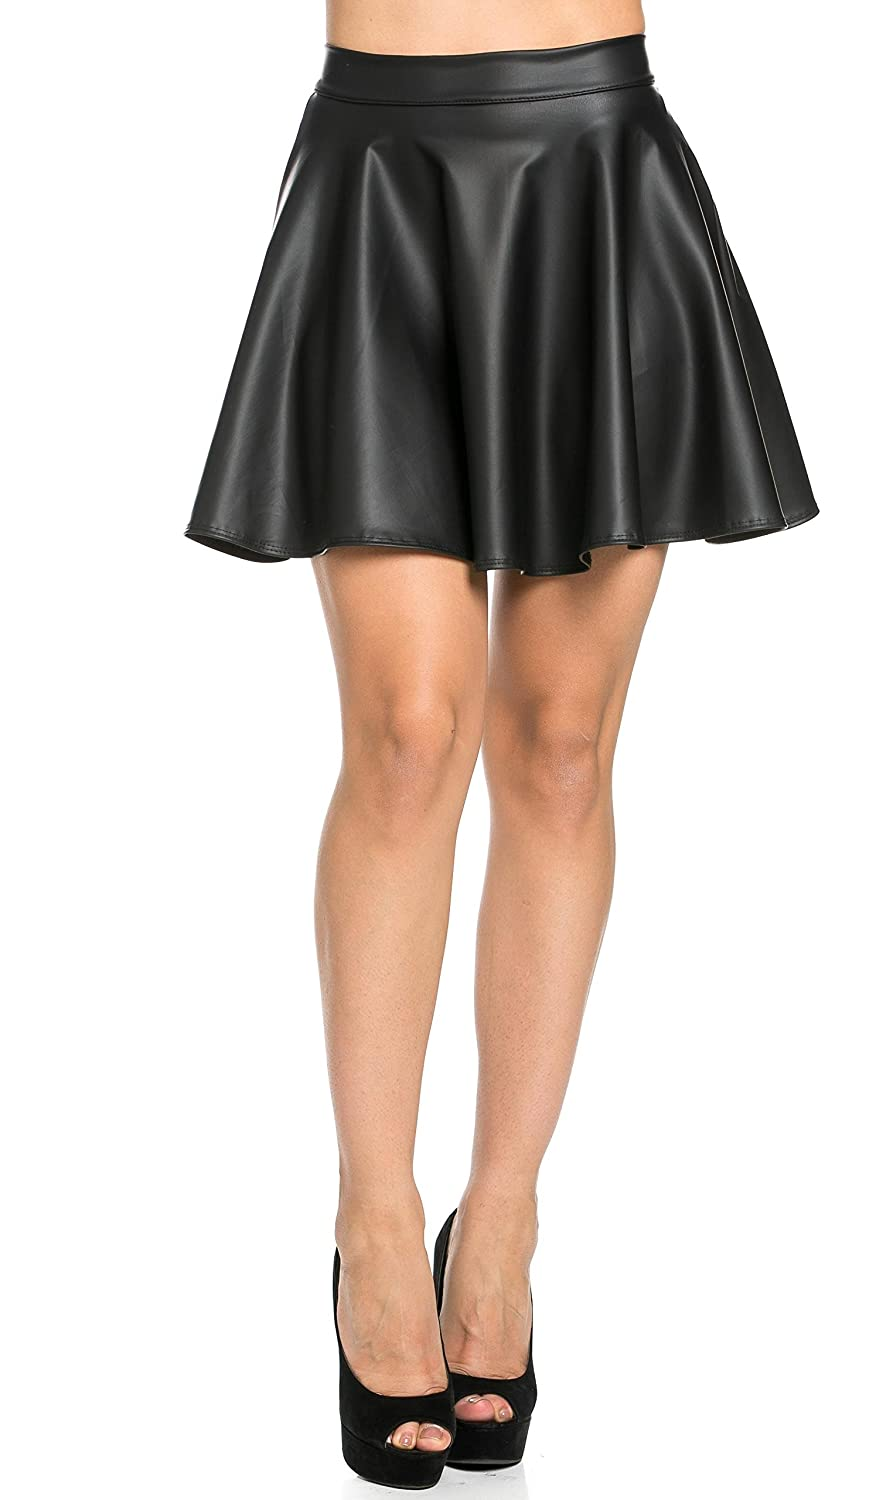 0f80d7e9f Feel flirty and fun in this cute High Waisted Faux Leather Skater Skirt.  This skirt features a soft faux leather material and a gold zipper closure  at back.